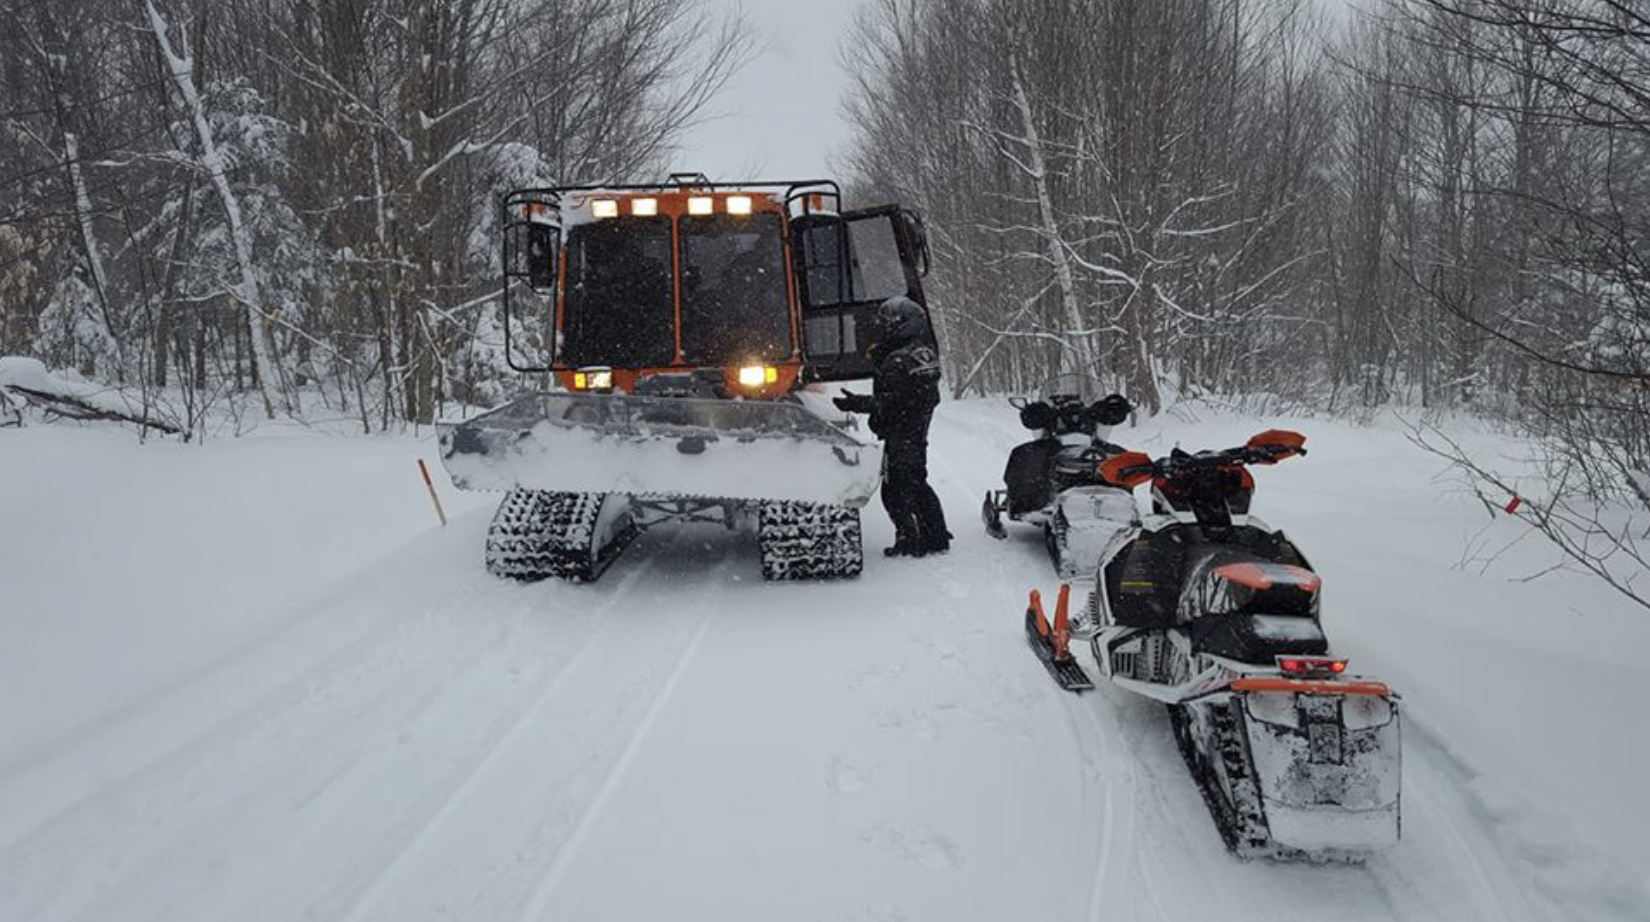 Brian in his Tucker Sno-Cat grooming Trail 2001.